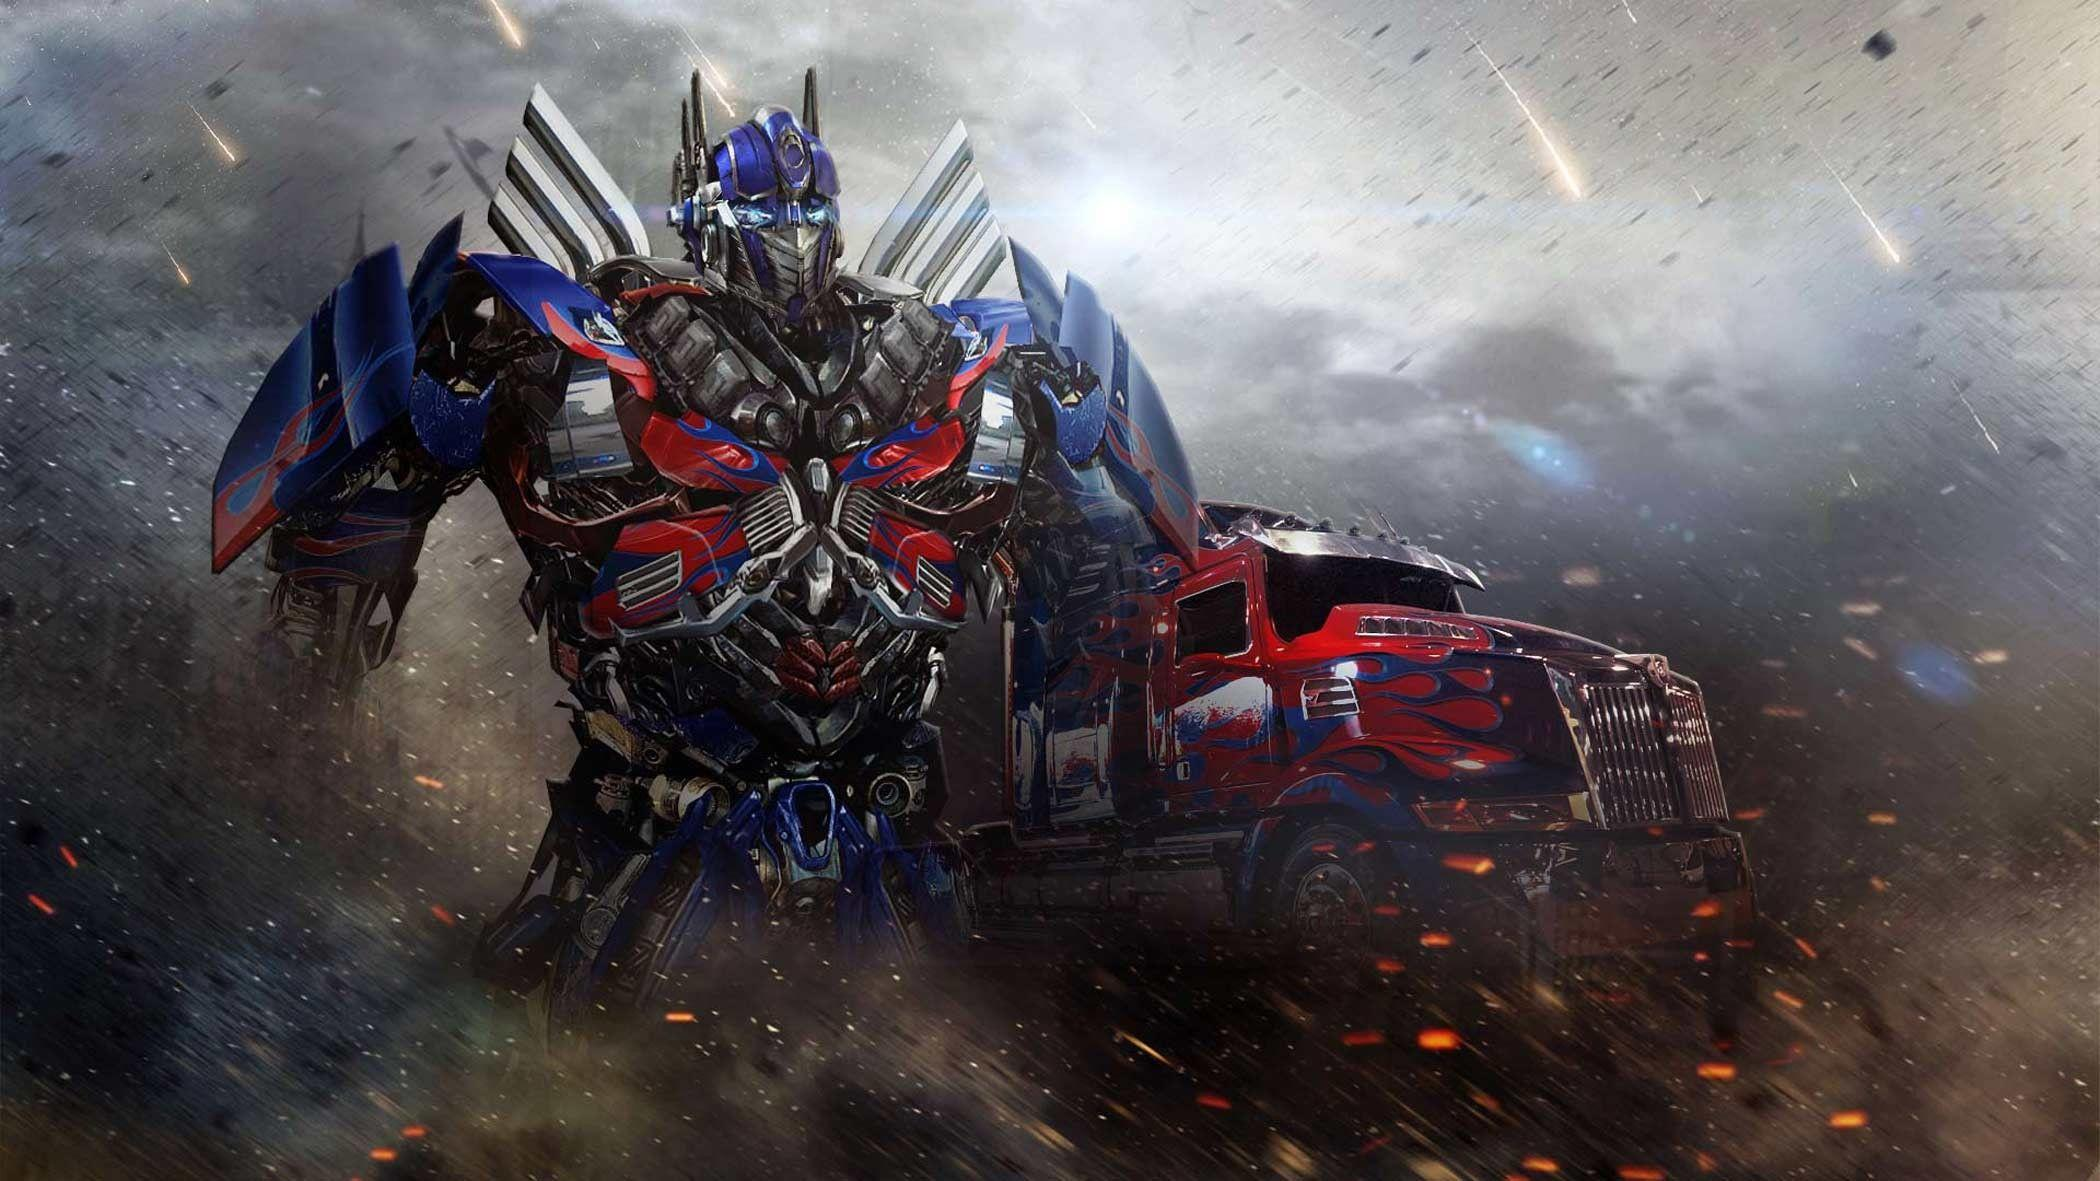 Transformers G1 Series Optimus Prime And Grimlock Wallpapers